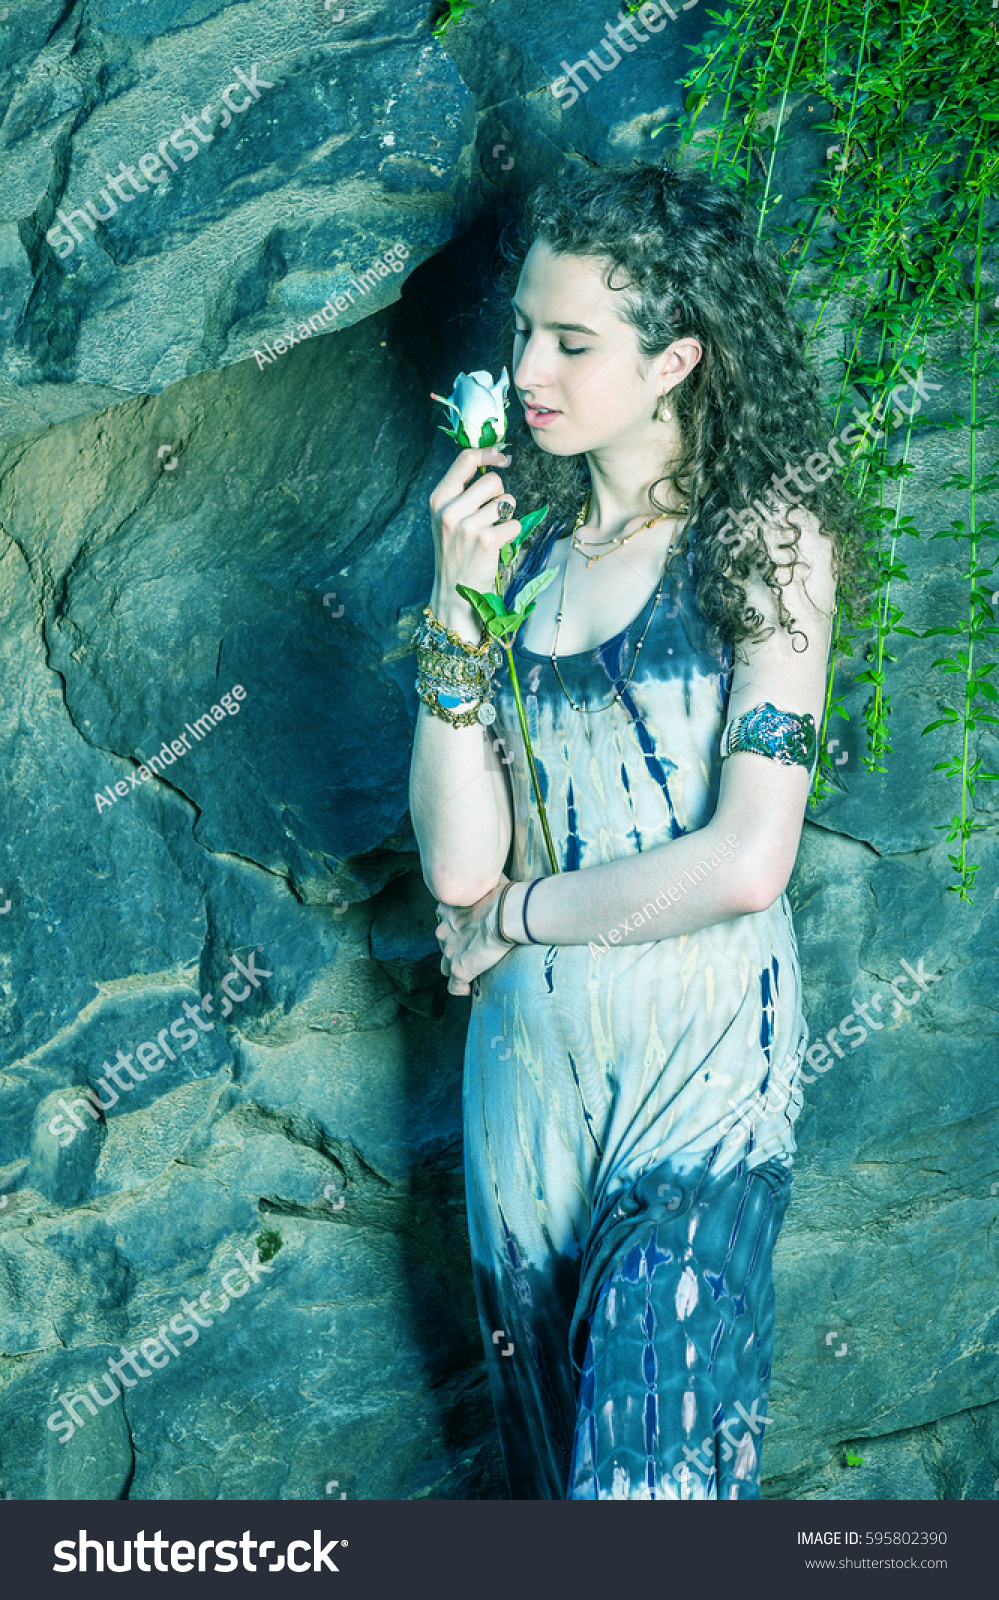 37b13f8a268 American teenager girl with curly hair, wearing patterned long dress,  bracelet, standing against.